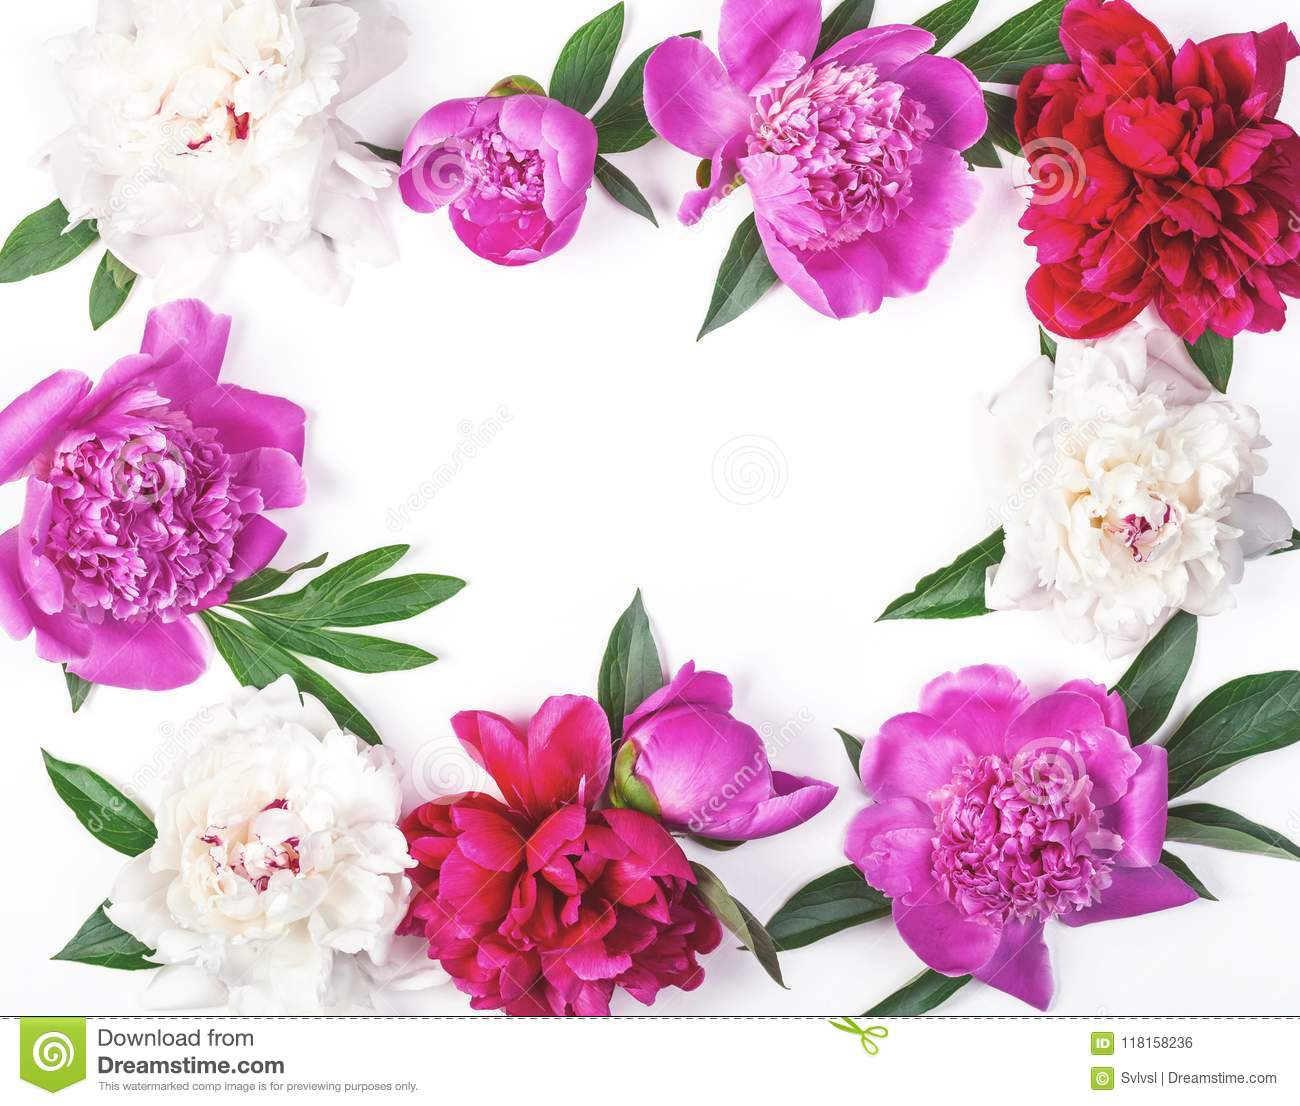 Floral Frame Made Of Pink And White Peony Flowers And Leaves